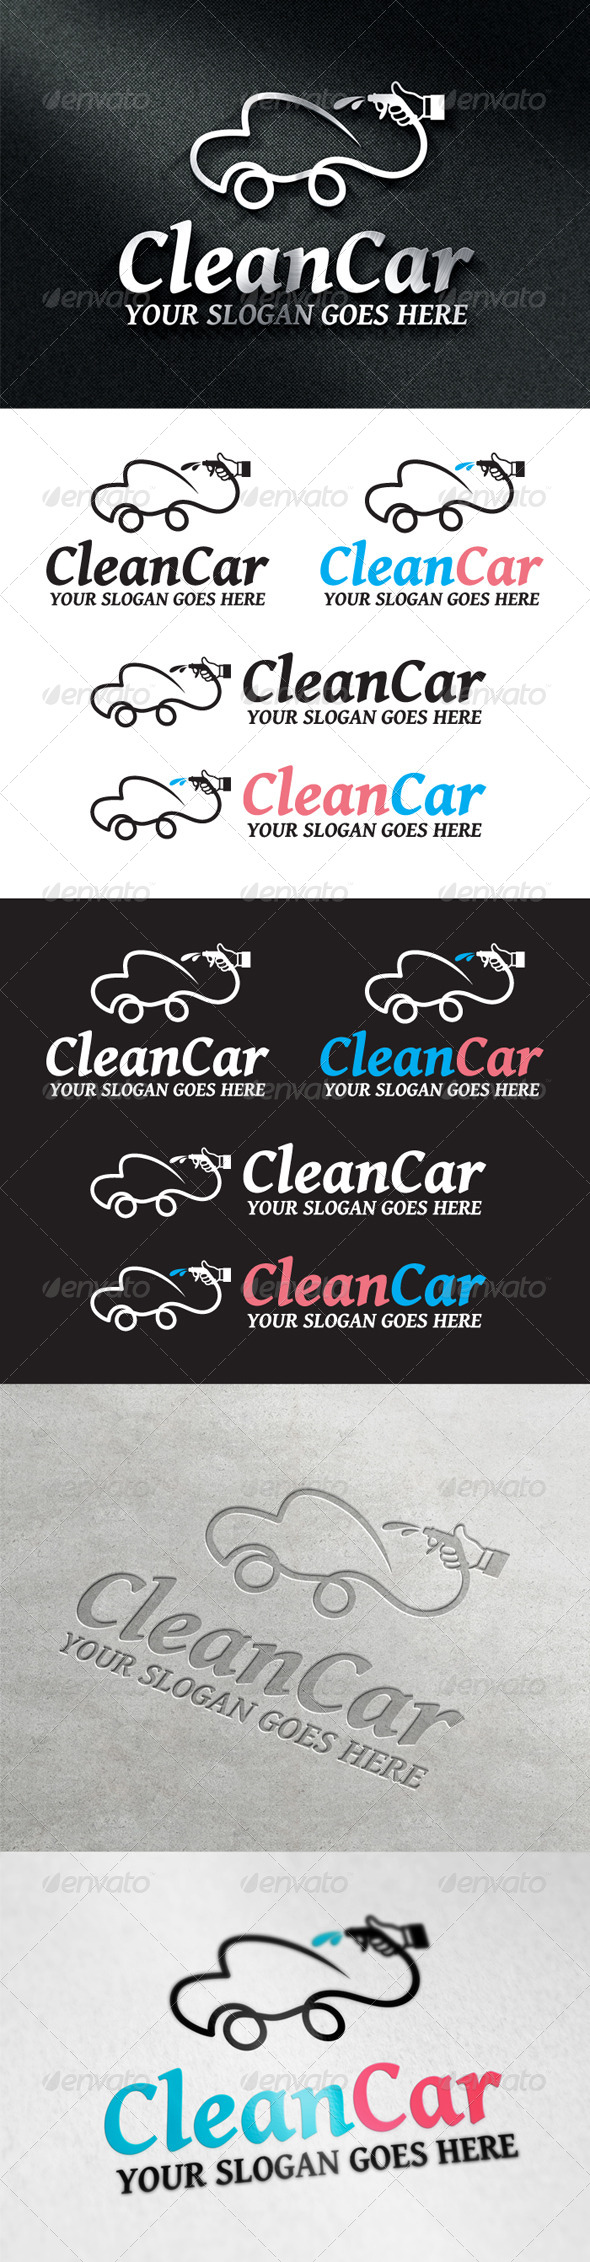 GraphicRiver CleanCar Logo 6946949